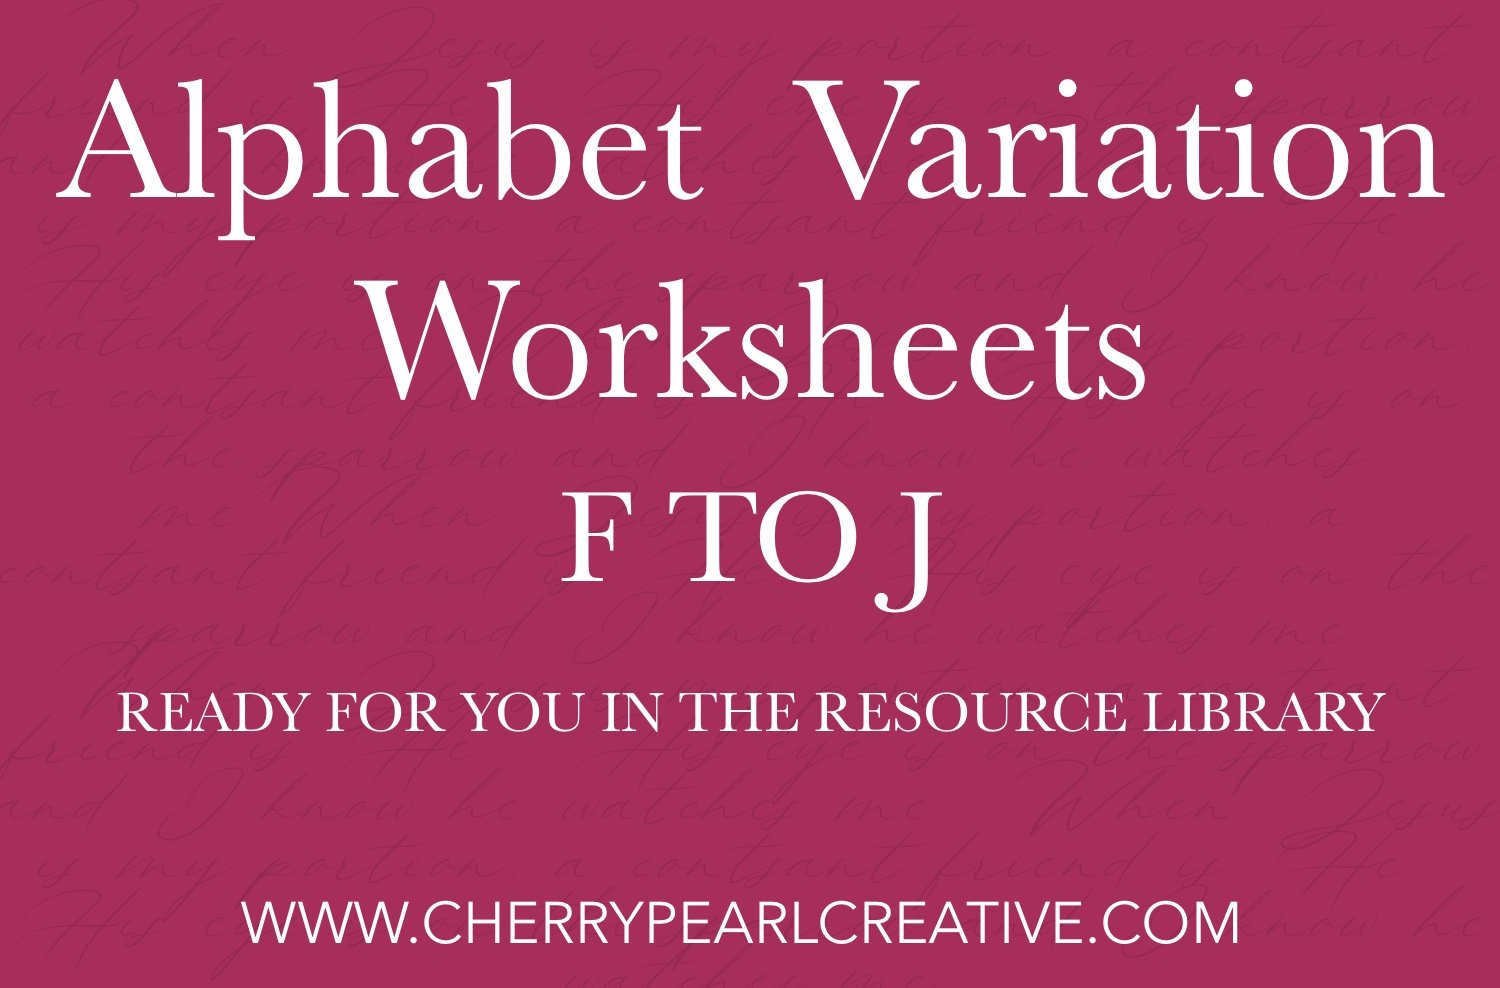 Alphabet Variation Worksheets; Free in the Resource Library!